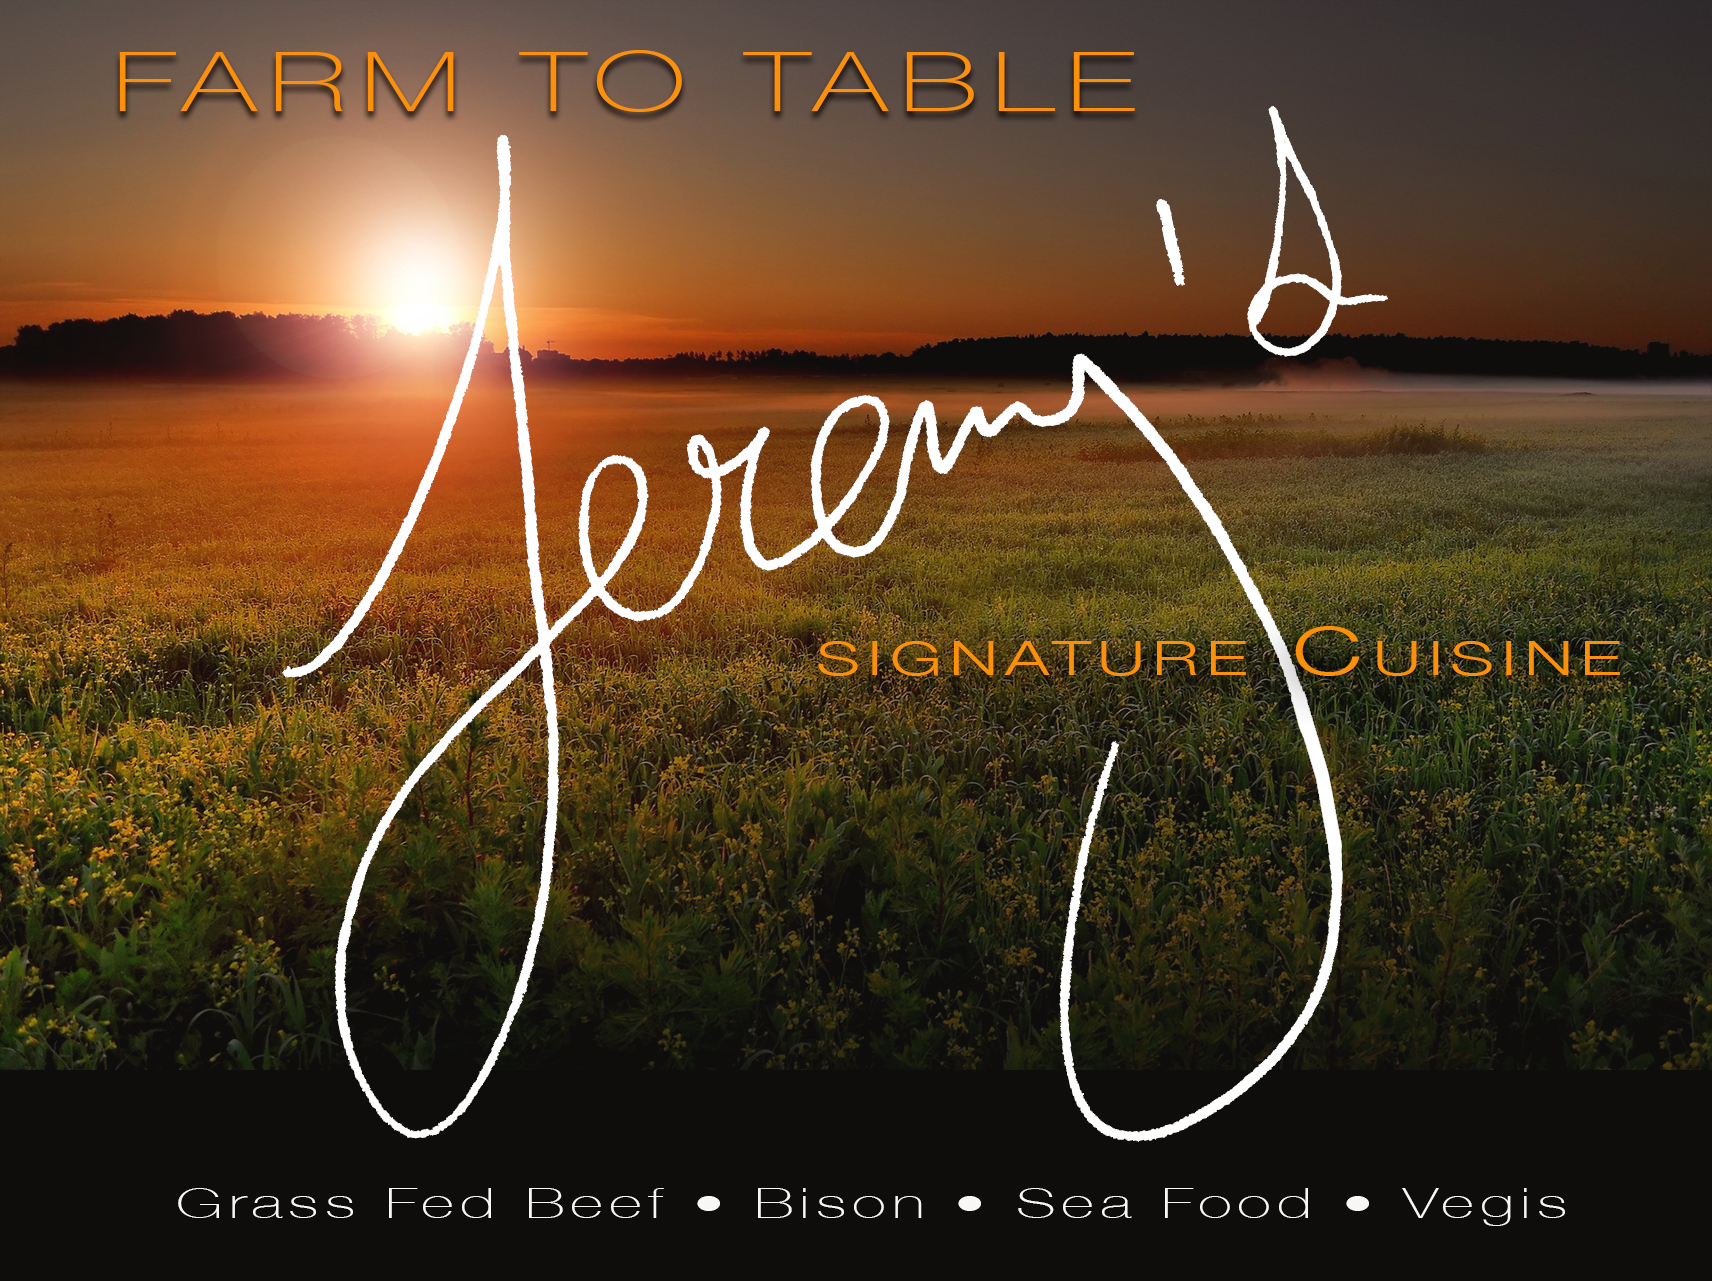 Farm to Table Signature Cuisine....